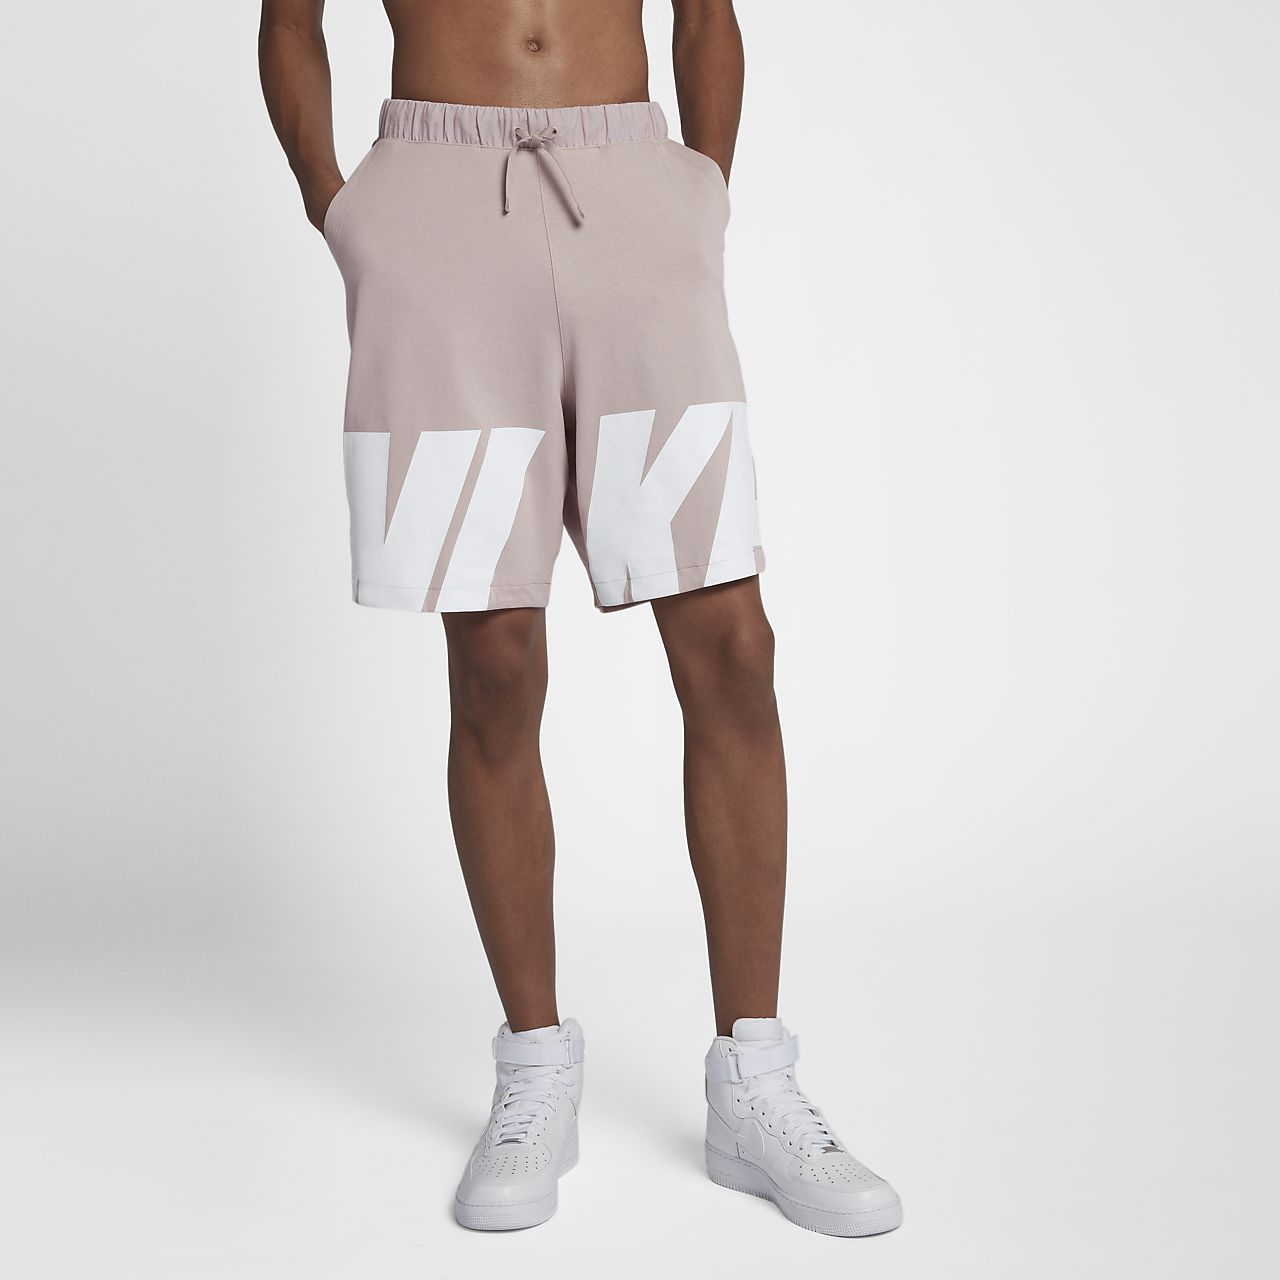 f04232196191d Nike Nike Sportswear Homme Shorts qCggt1D - daily.weekend-mariage ...